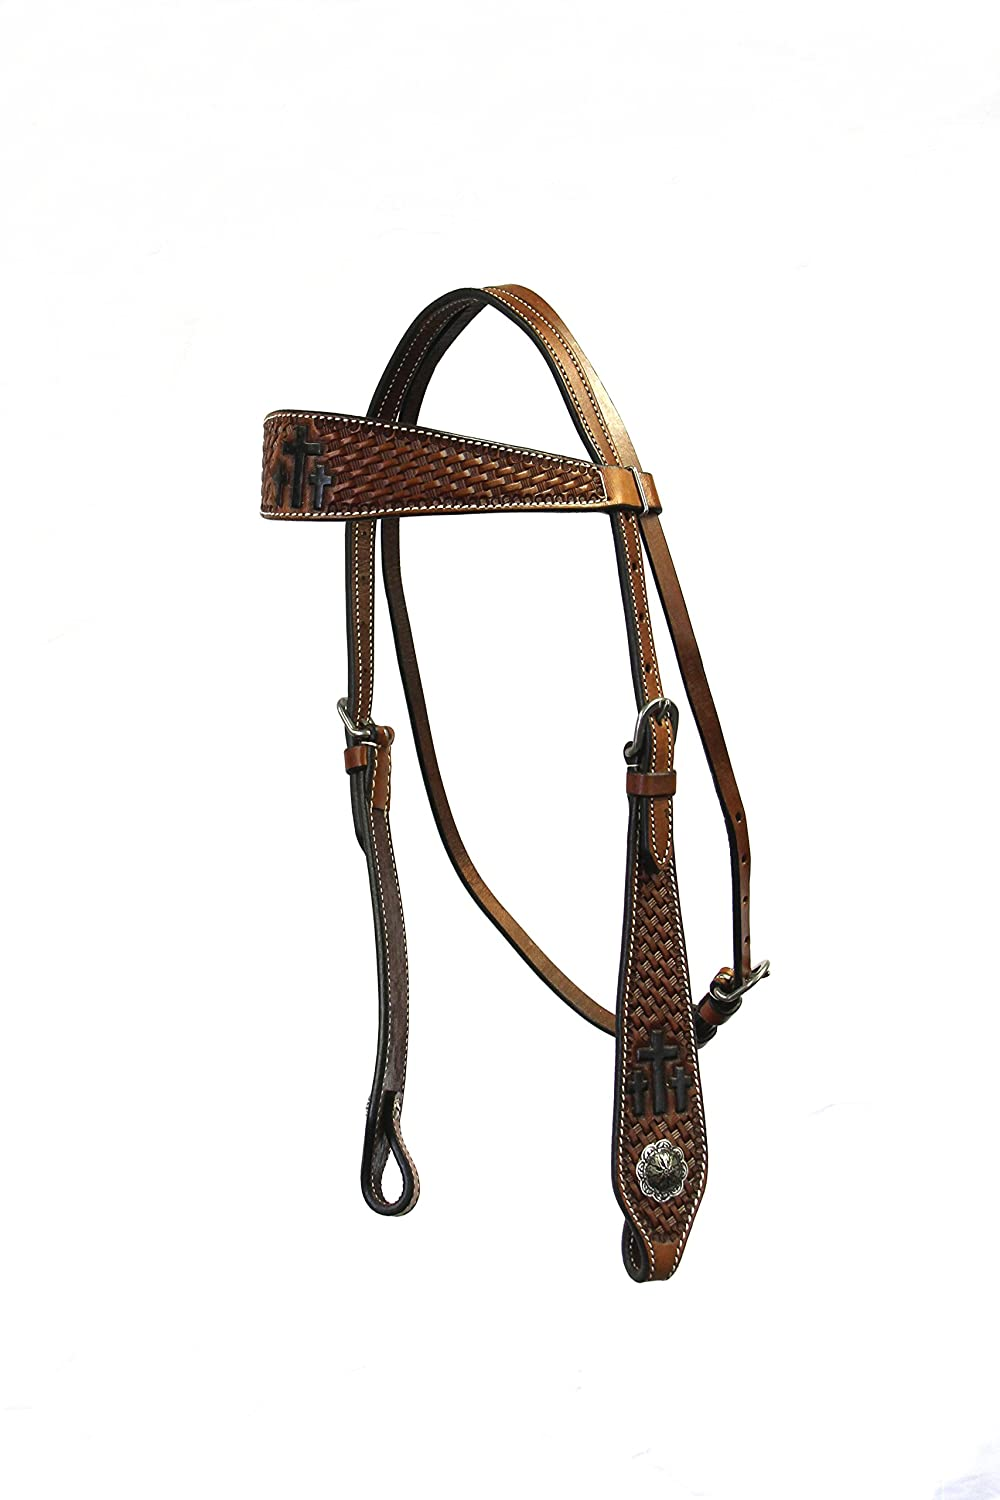 colorado Saddlery 5-5103dk Trinity Cross Headstall 5-5103dk, Not Applicable